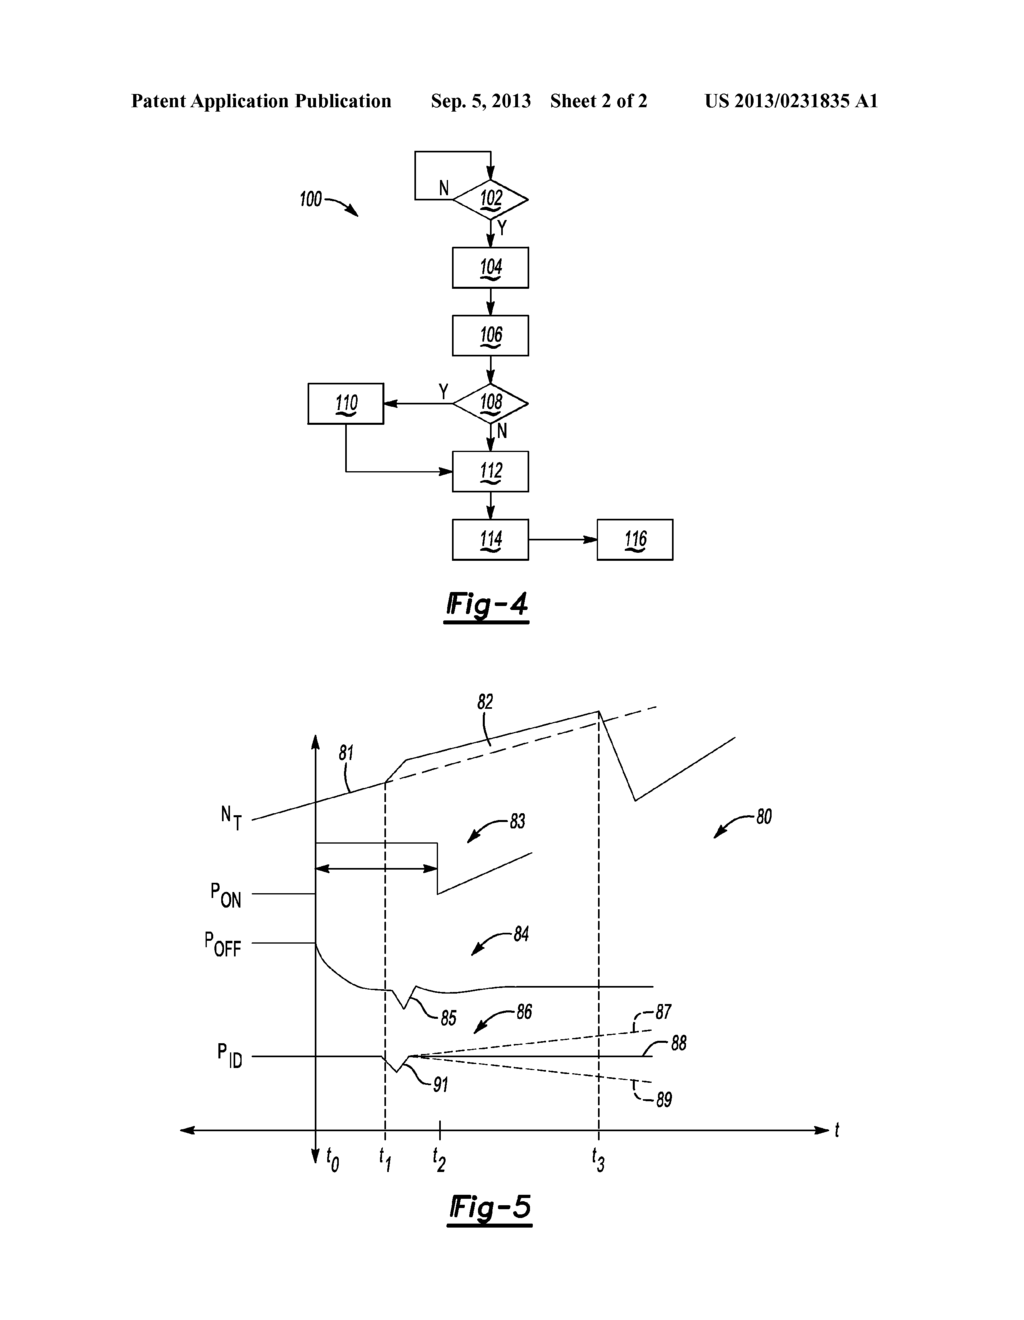 hight resolution of determination of transmission clutch control values using pid control logic during power on upshift diagram schematic and image 03